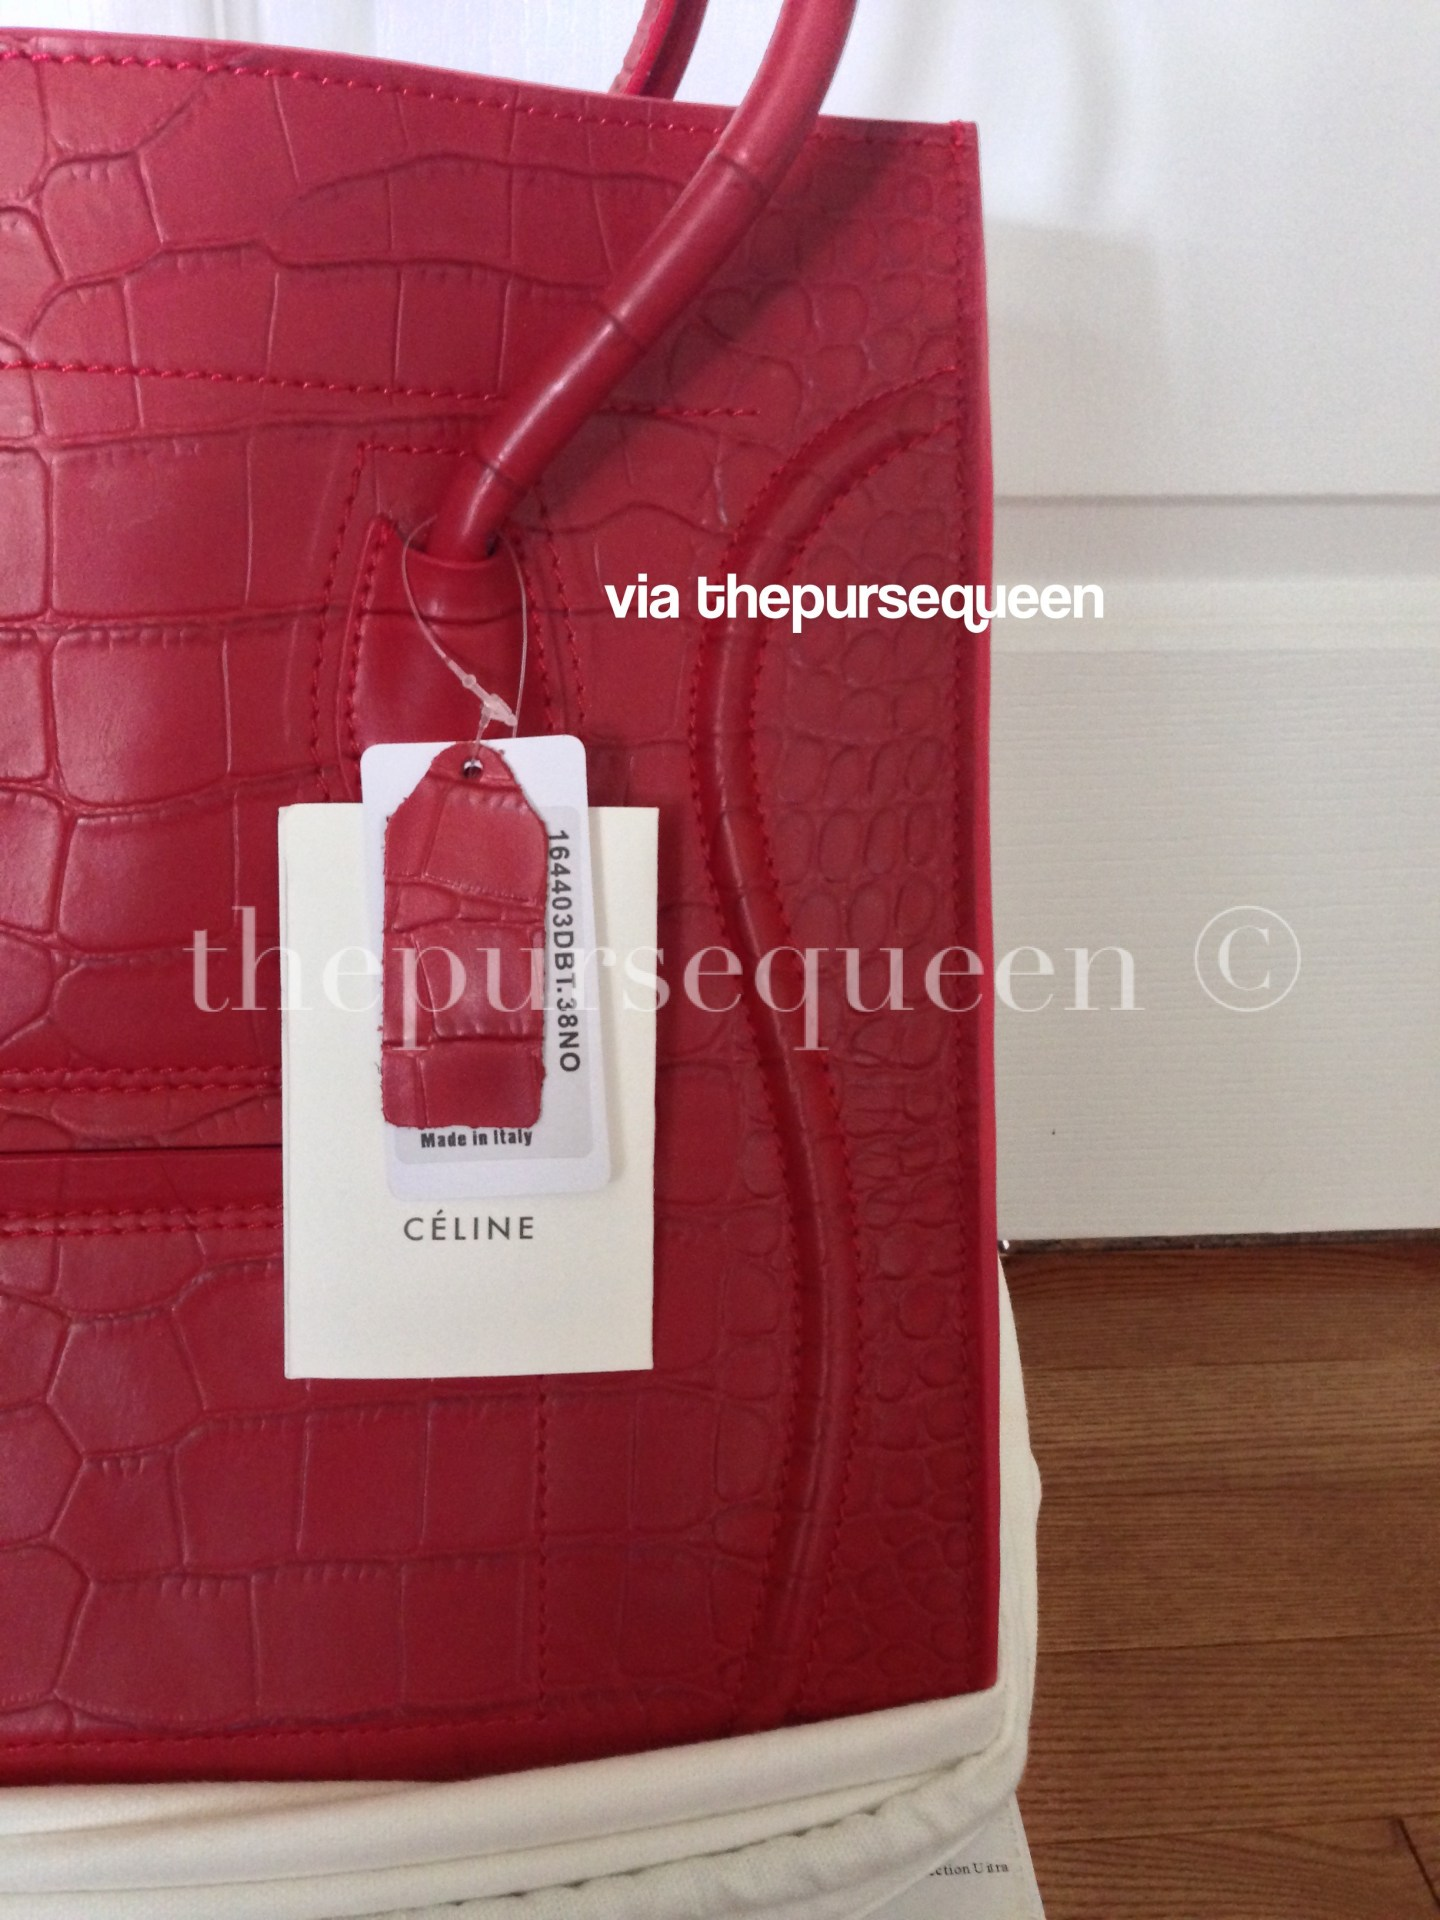 replica-celine-bag